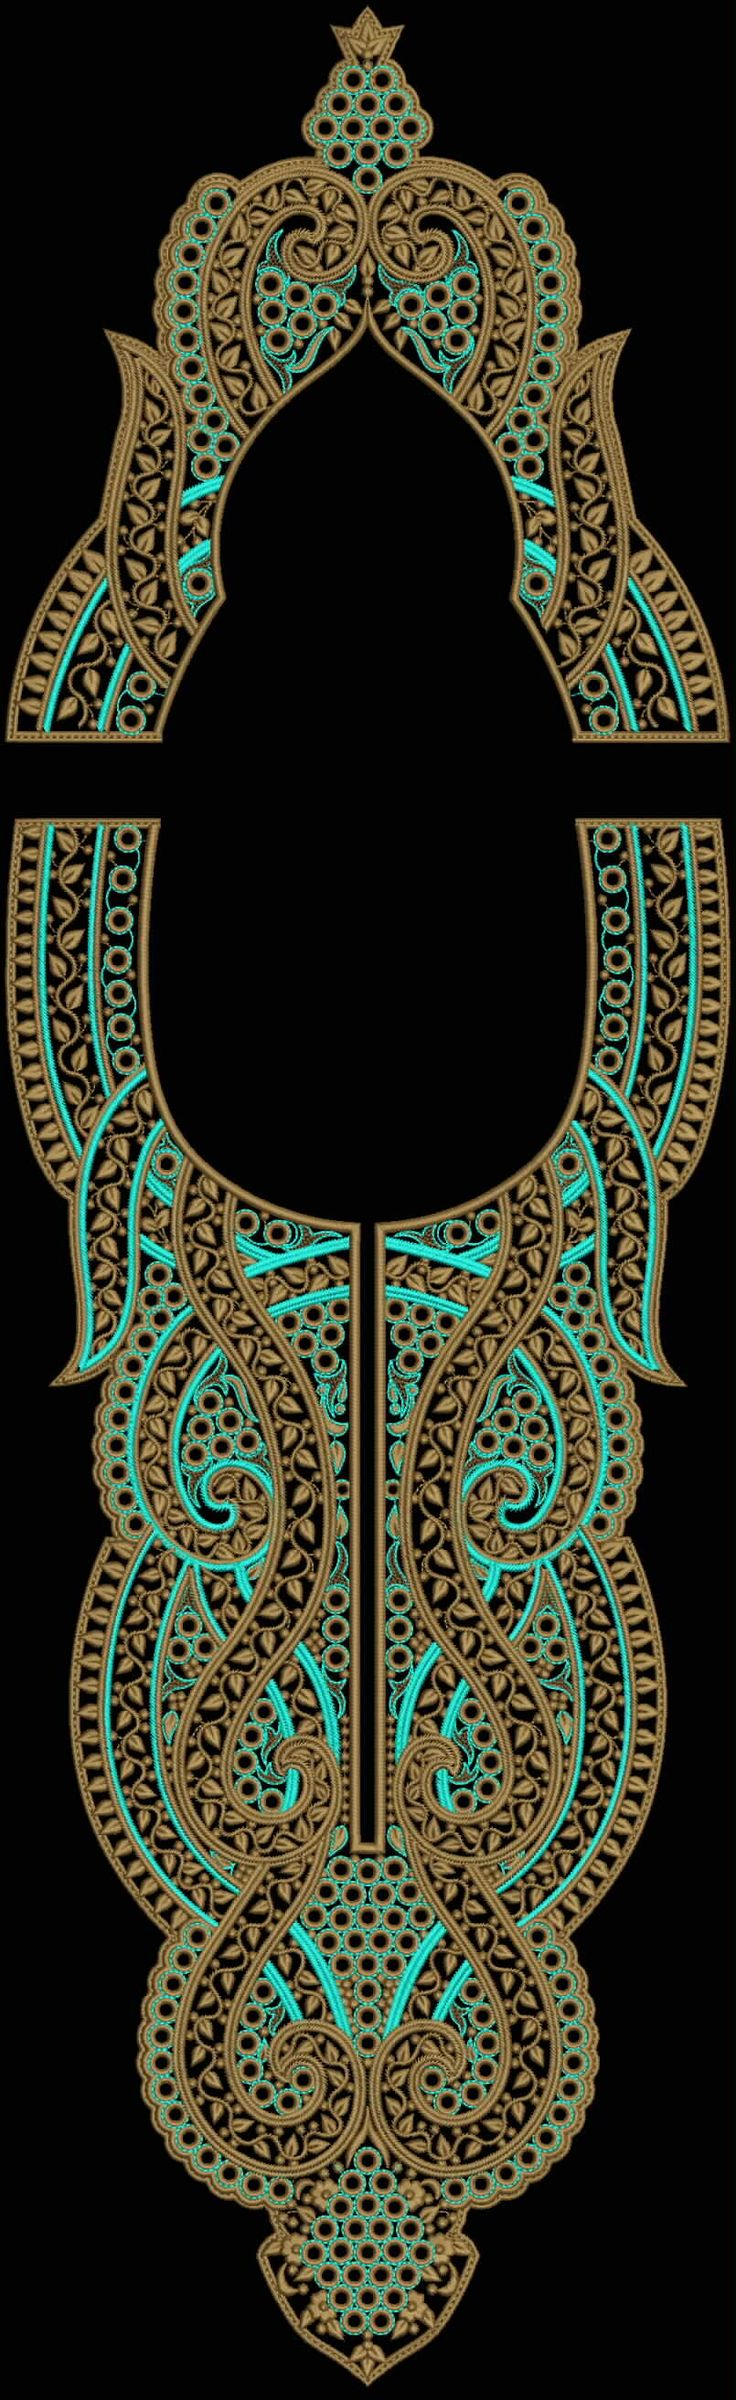 Latest Embroidery Designs For Sale, If U Want Embroidery Designs Plz Contact (Khalid Mahmood, +92-300-9406667) Design# Khushbu2